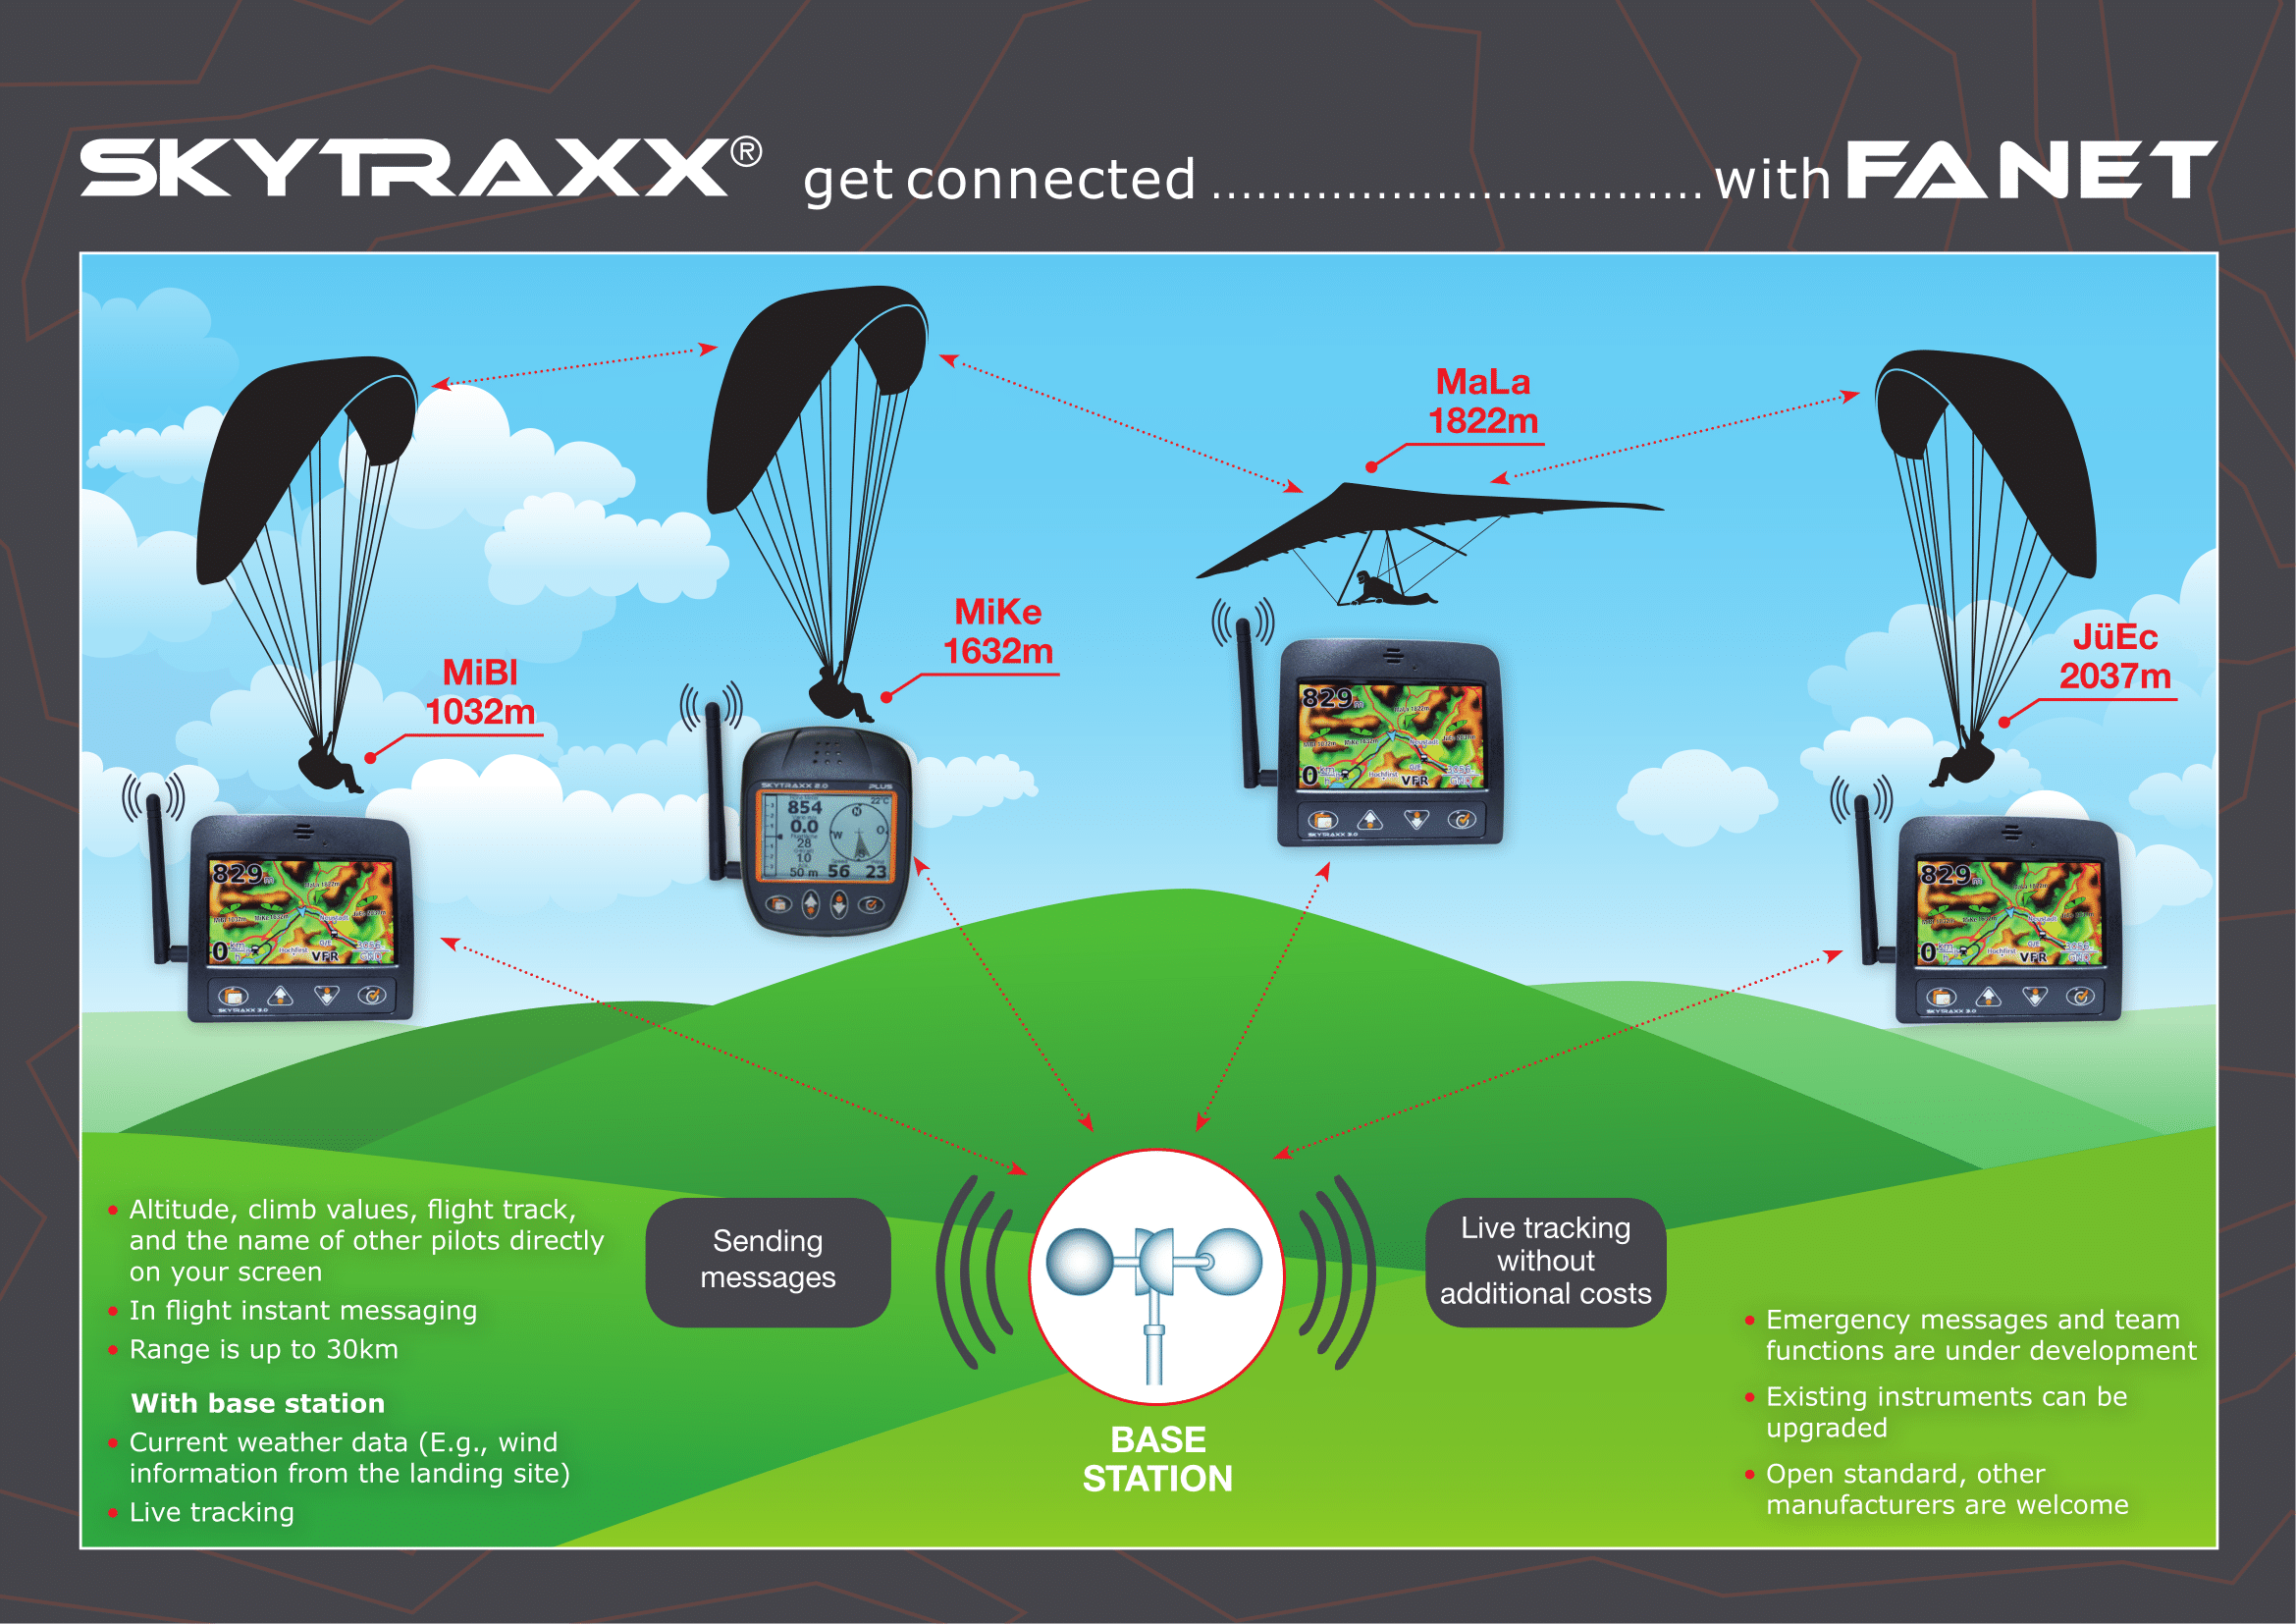 Skytraxx with FANET